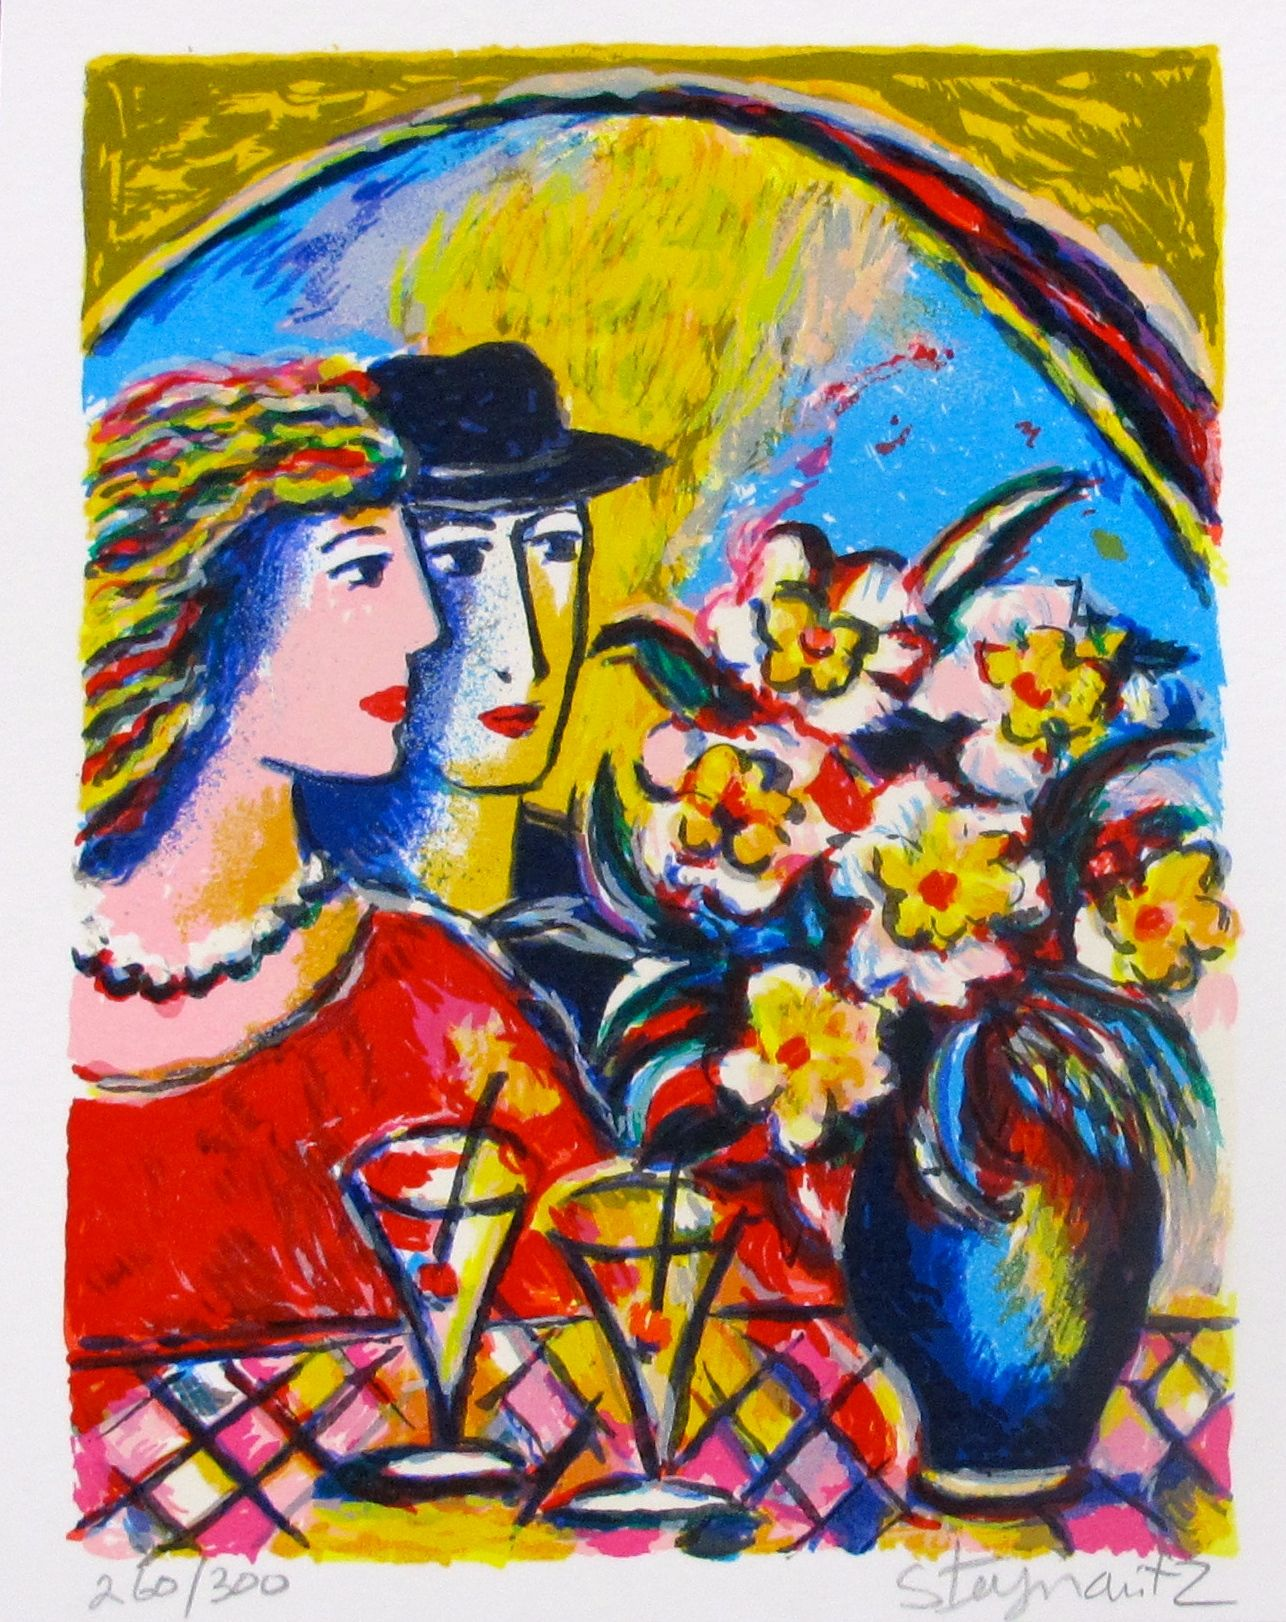 """ZAMY STEYNOVITZ """"FIRST DATE"""" Hand Signed Limited Edition Lithograph"""